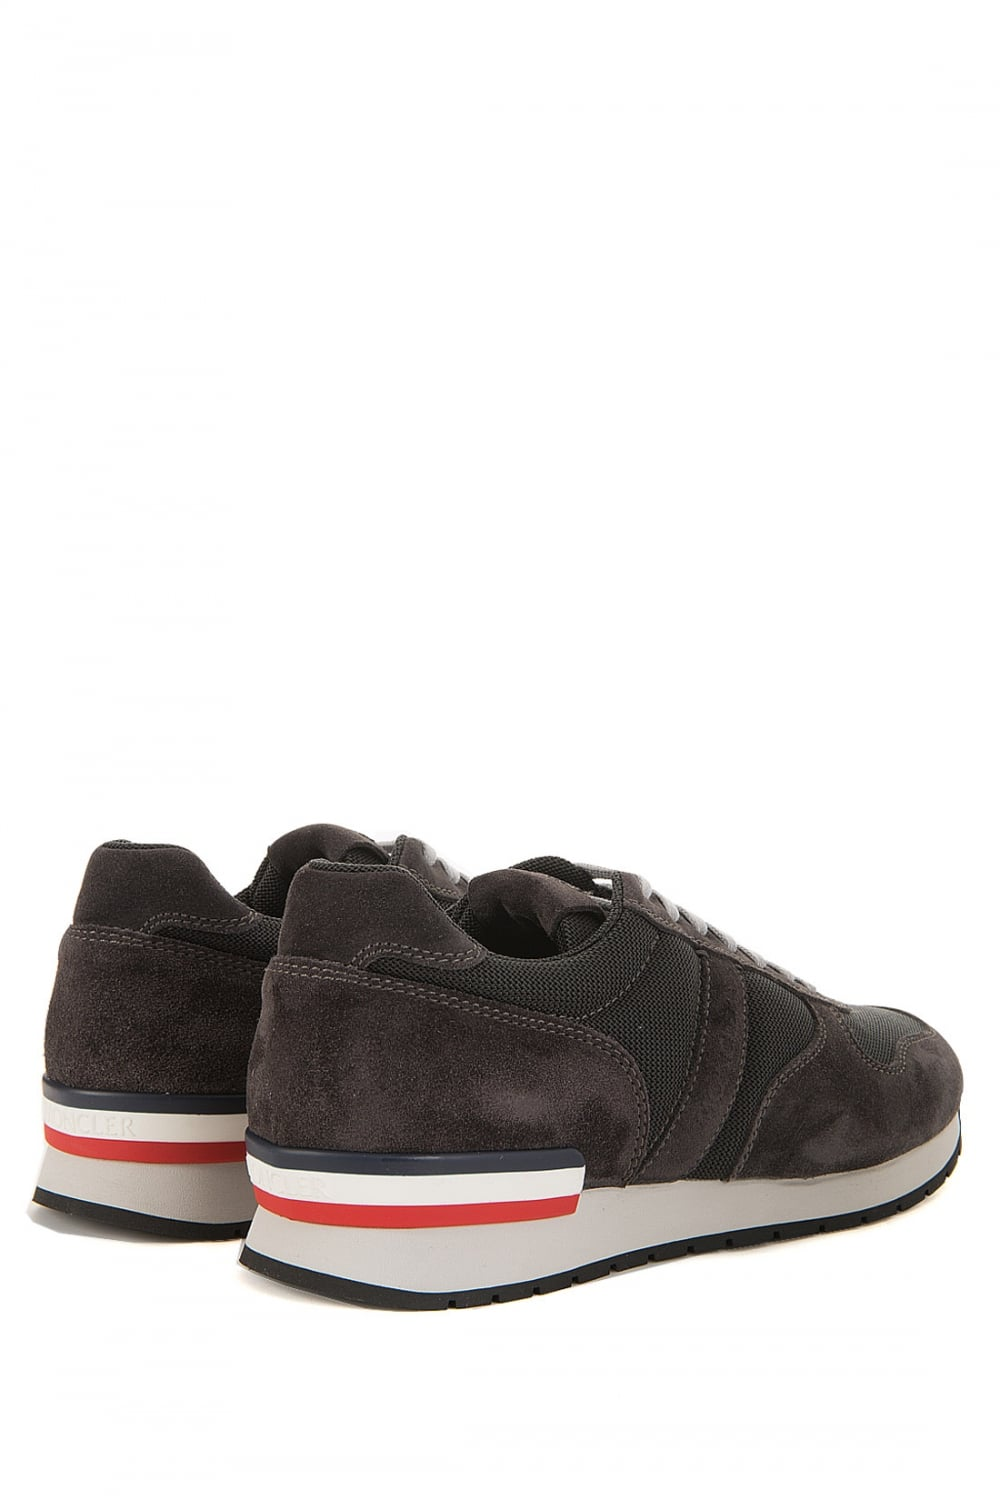 MONCLER Moncler Montego Grey Trainers - MONCLER from ... Hugo Boss Green Shoes